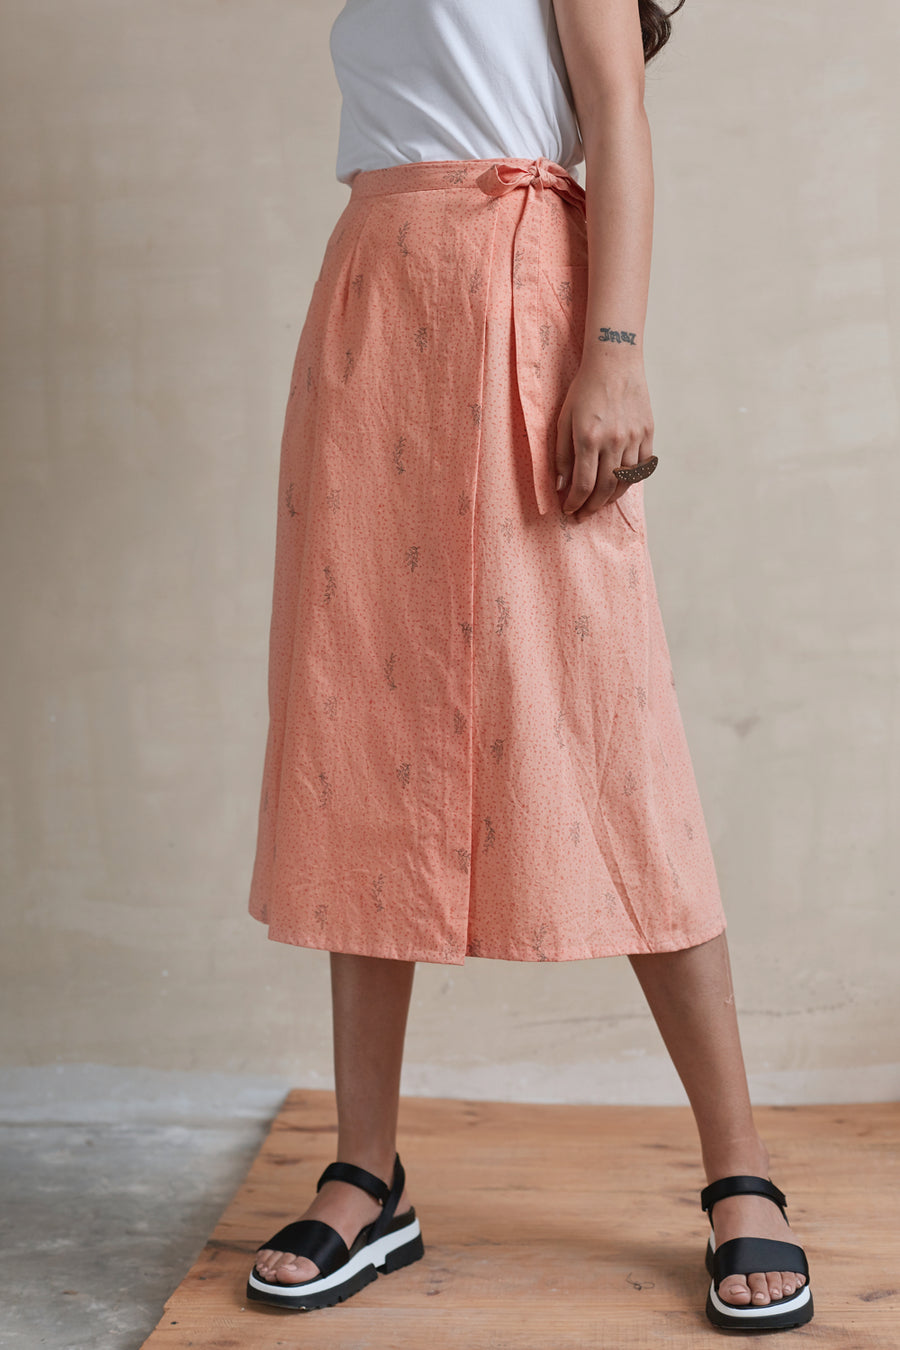 Wrapped in Peach Midi Skirt - onlyethikal